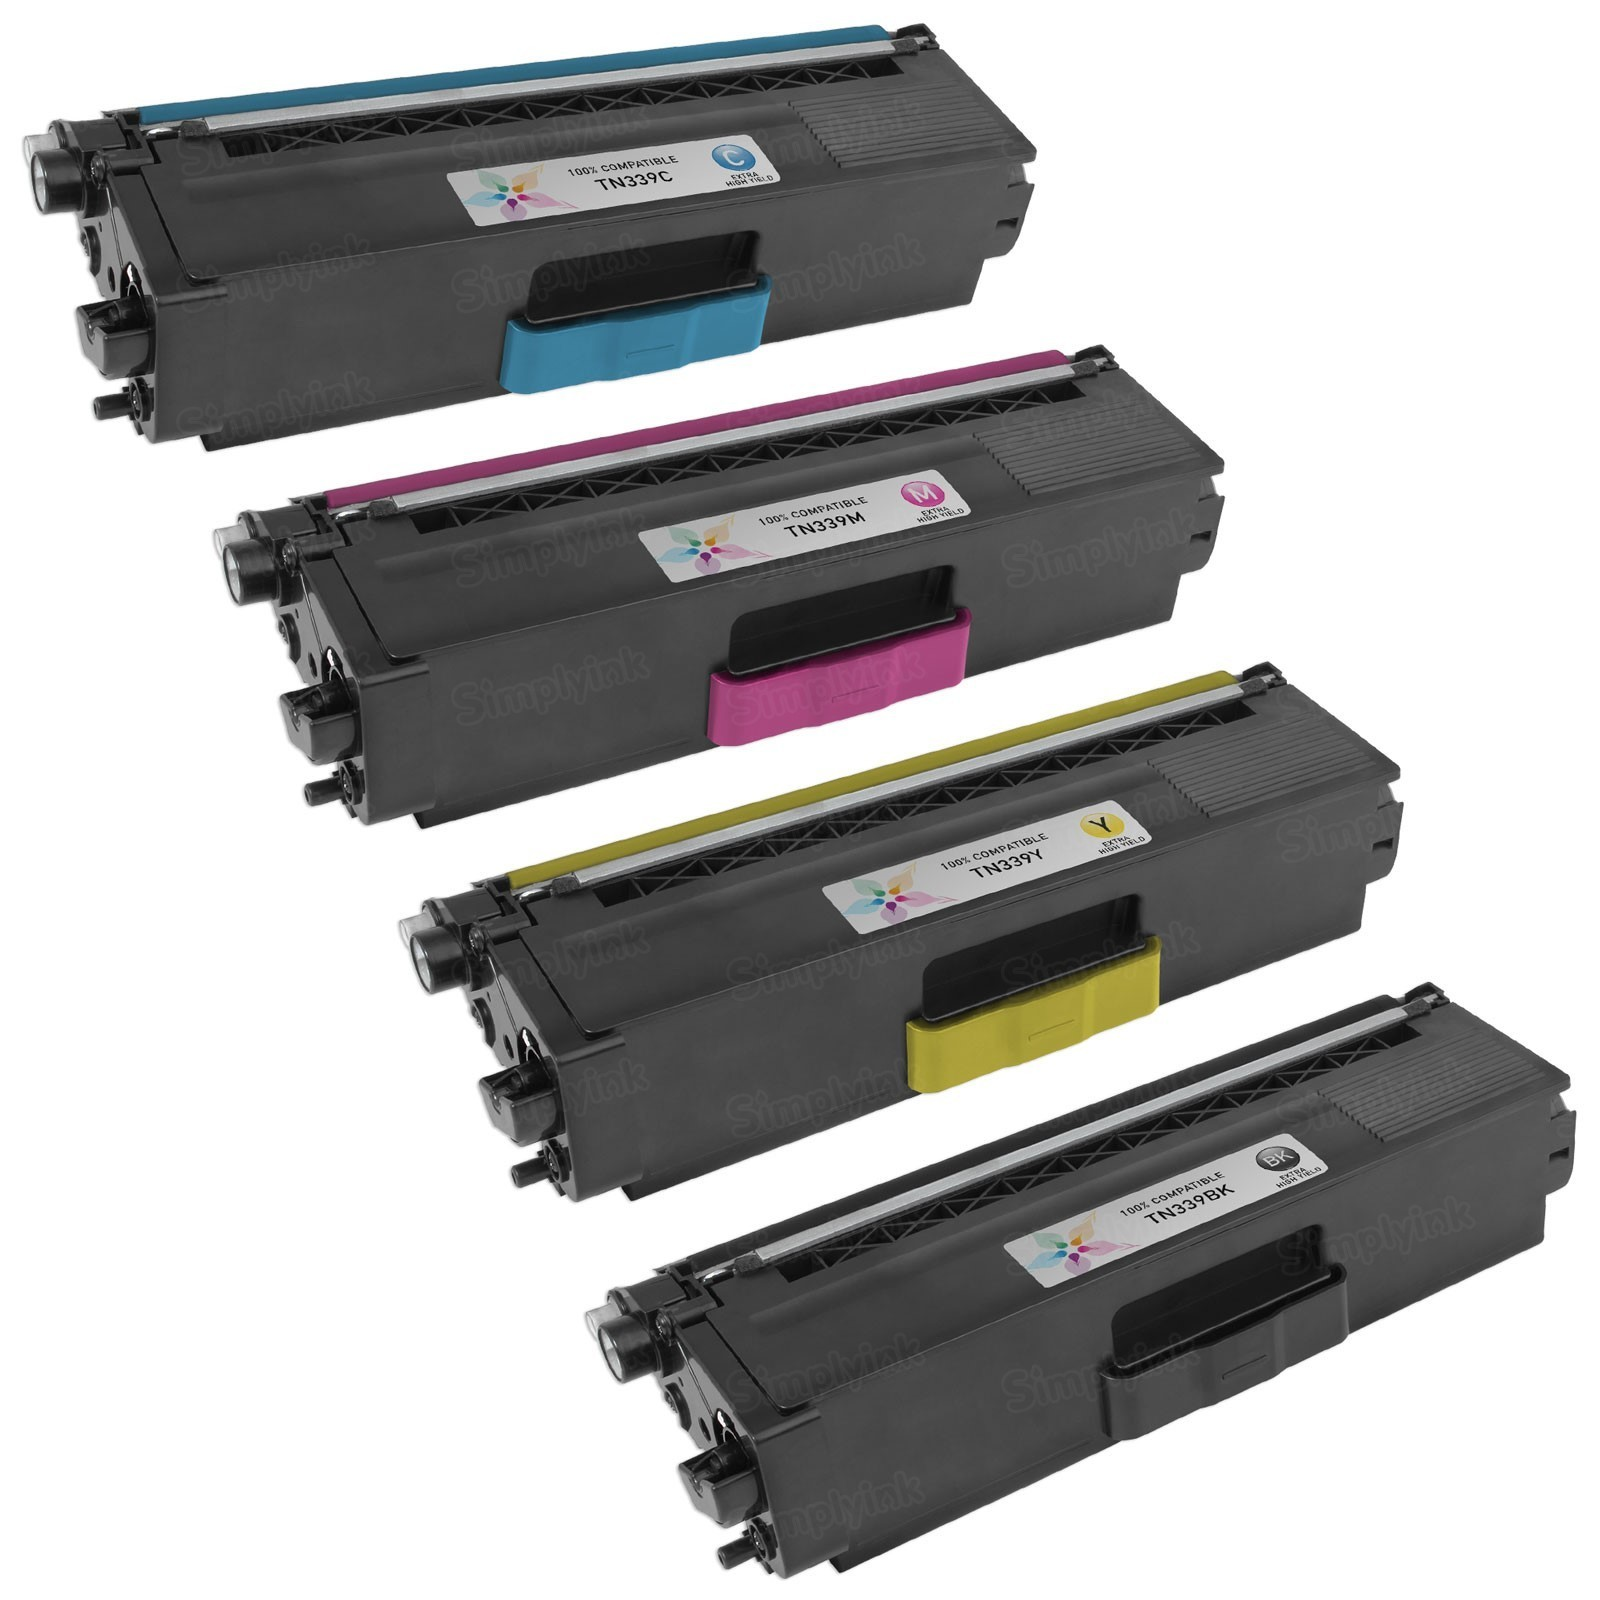 Brother TN339 Compatible Toners (Set of 4) - Black, Cyan, Magenta, Yellow